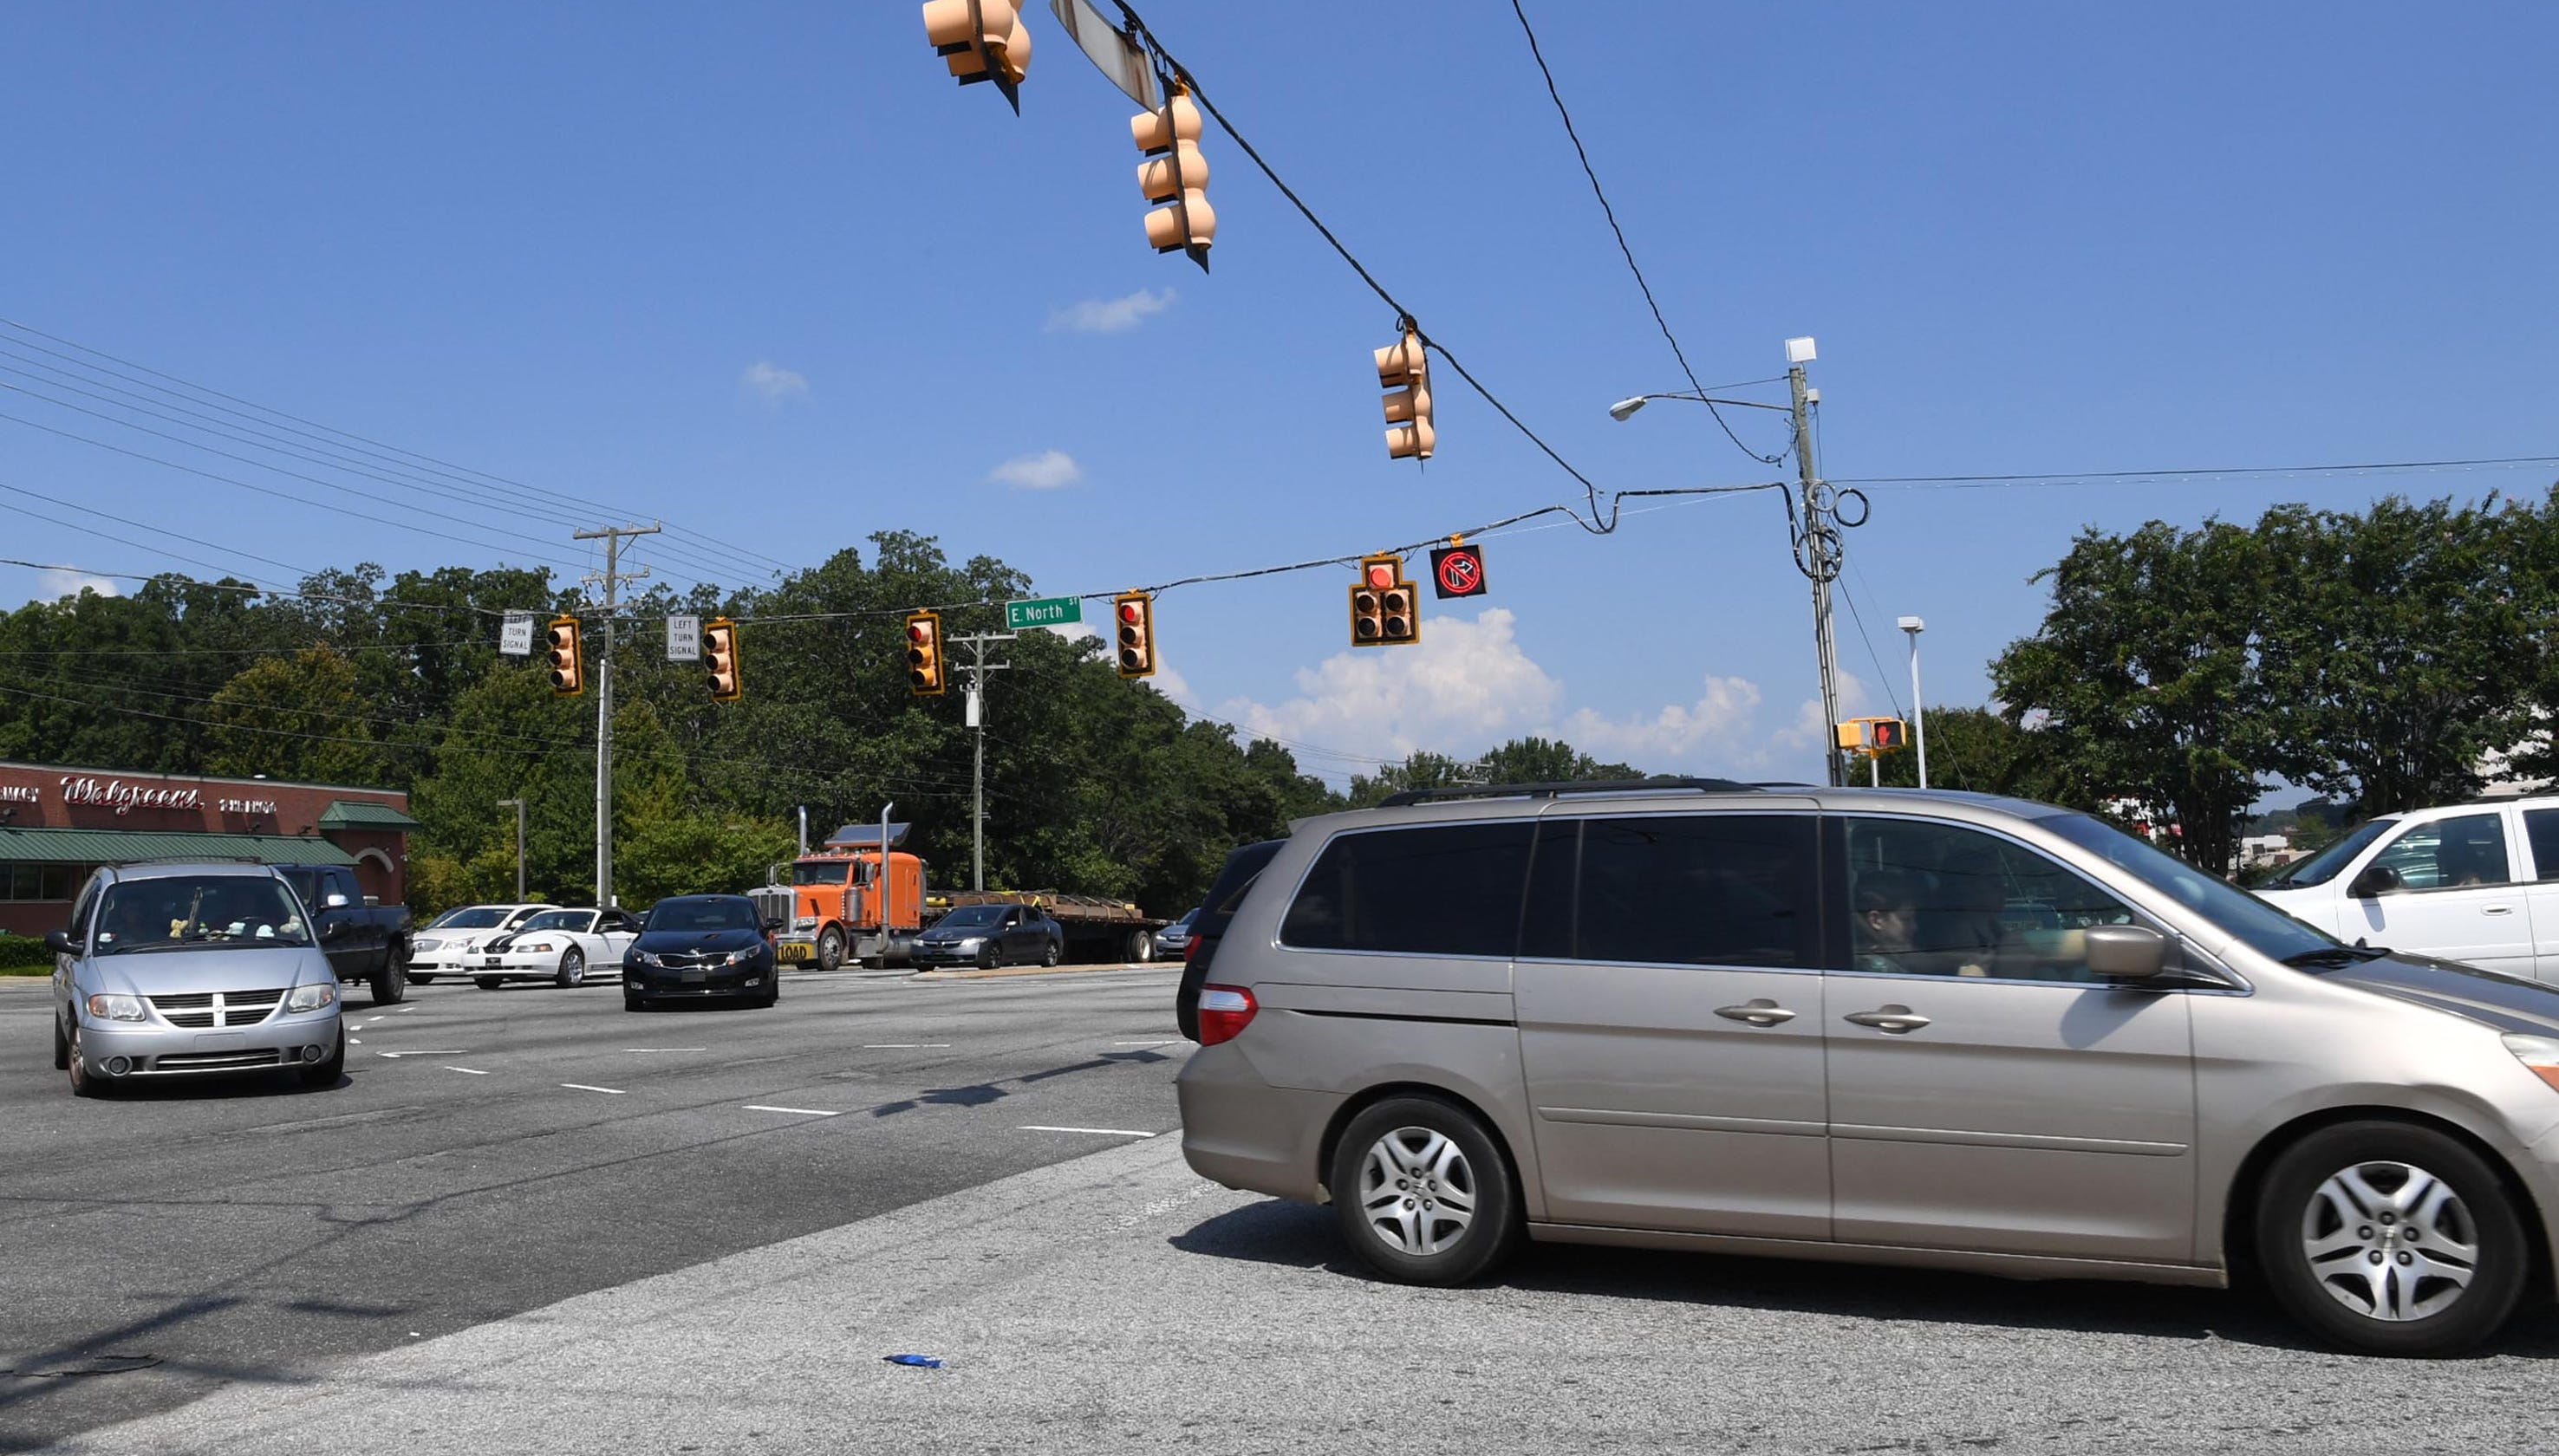 Greenville's accident hot spots remain mostly consistent through years